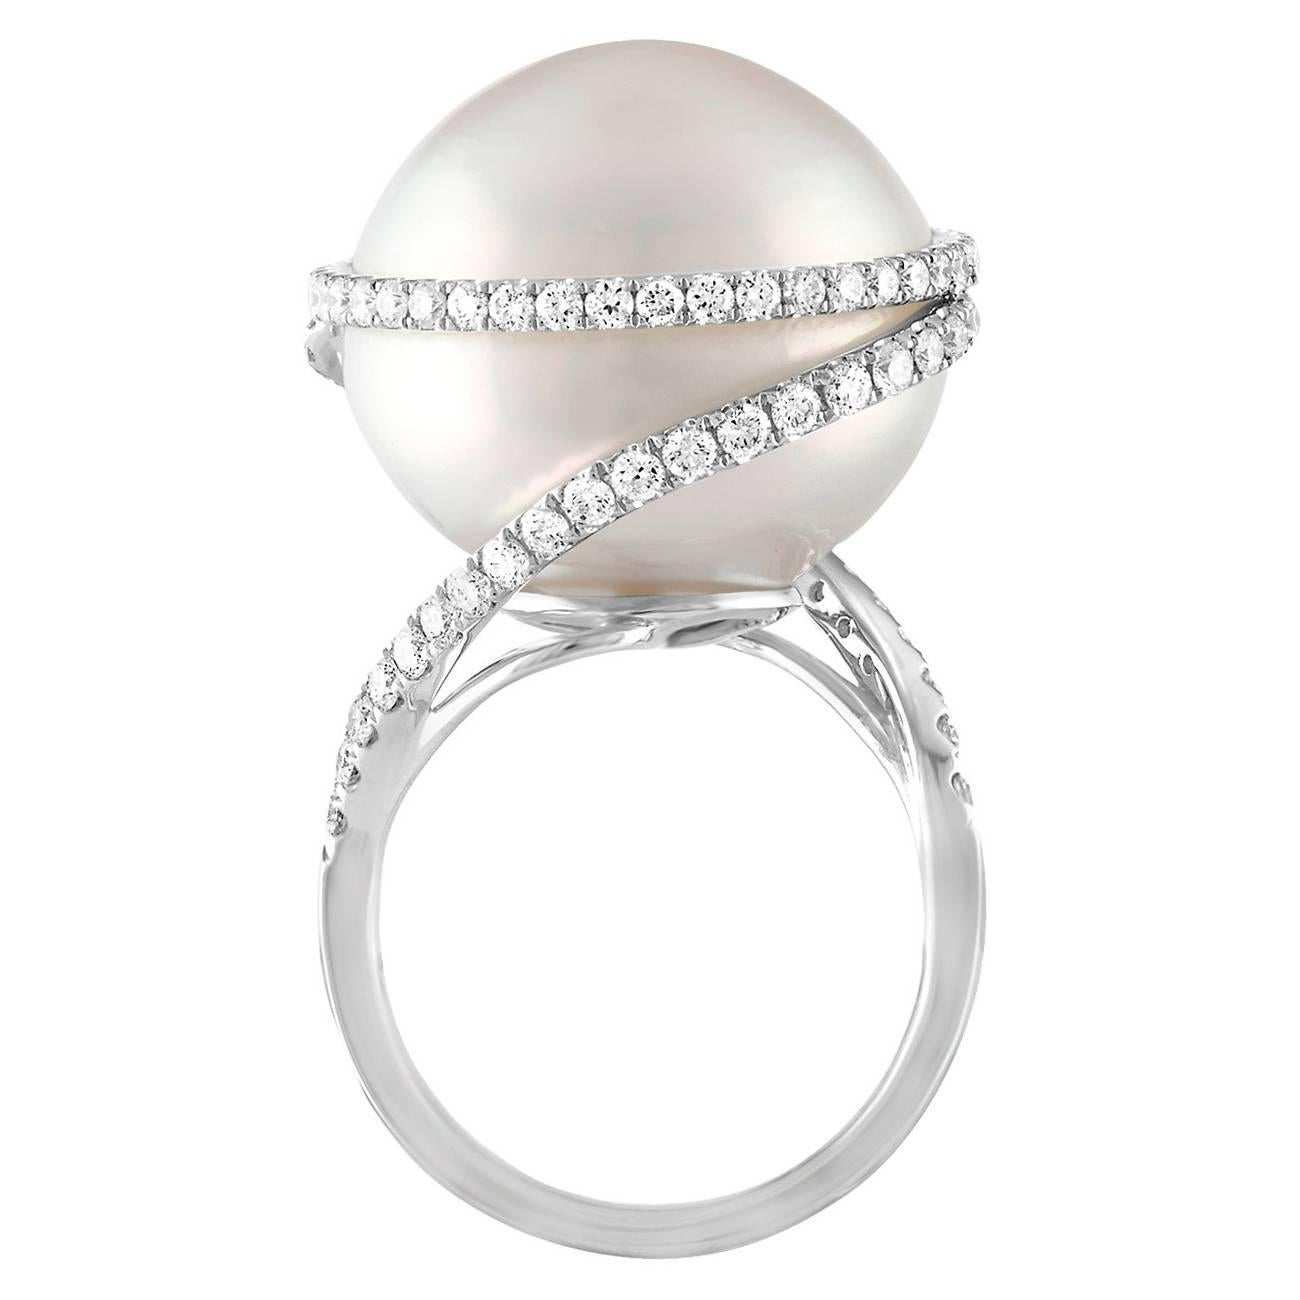 1.16 Carats Diamonds And South Sea Pearl Gold Ring